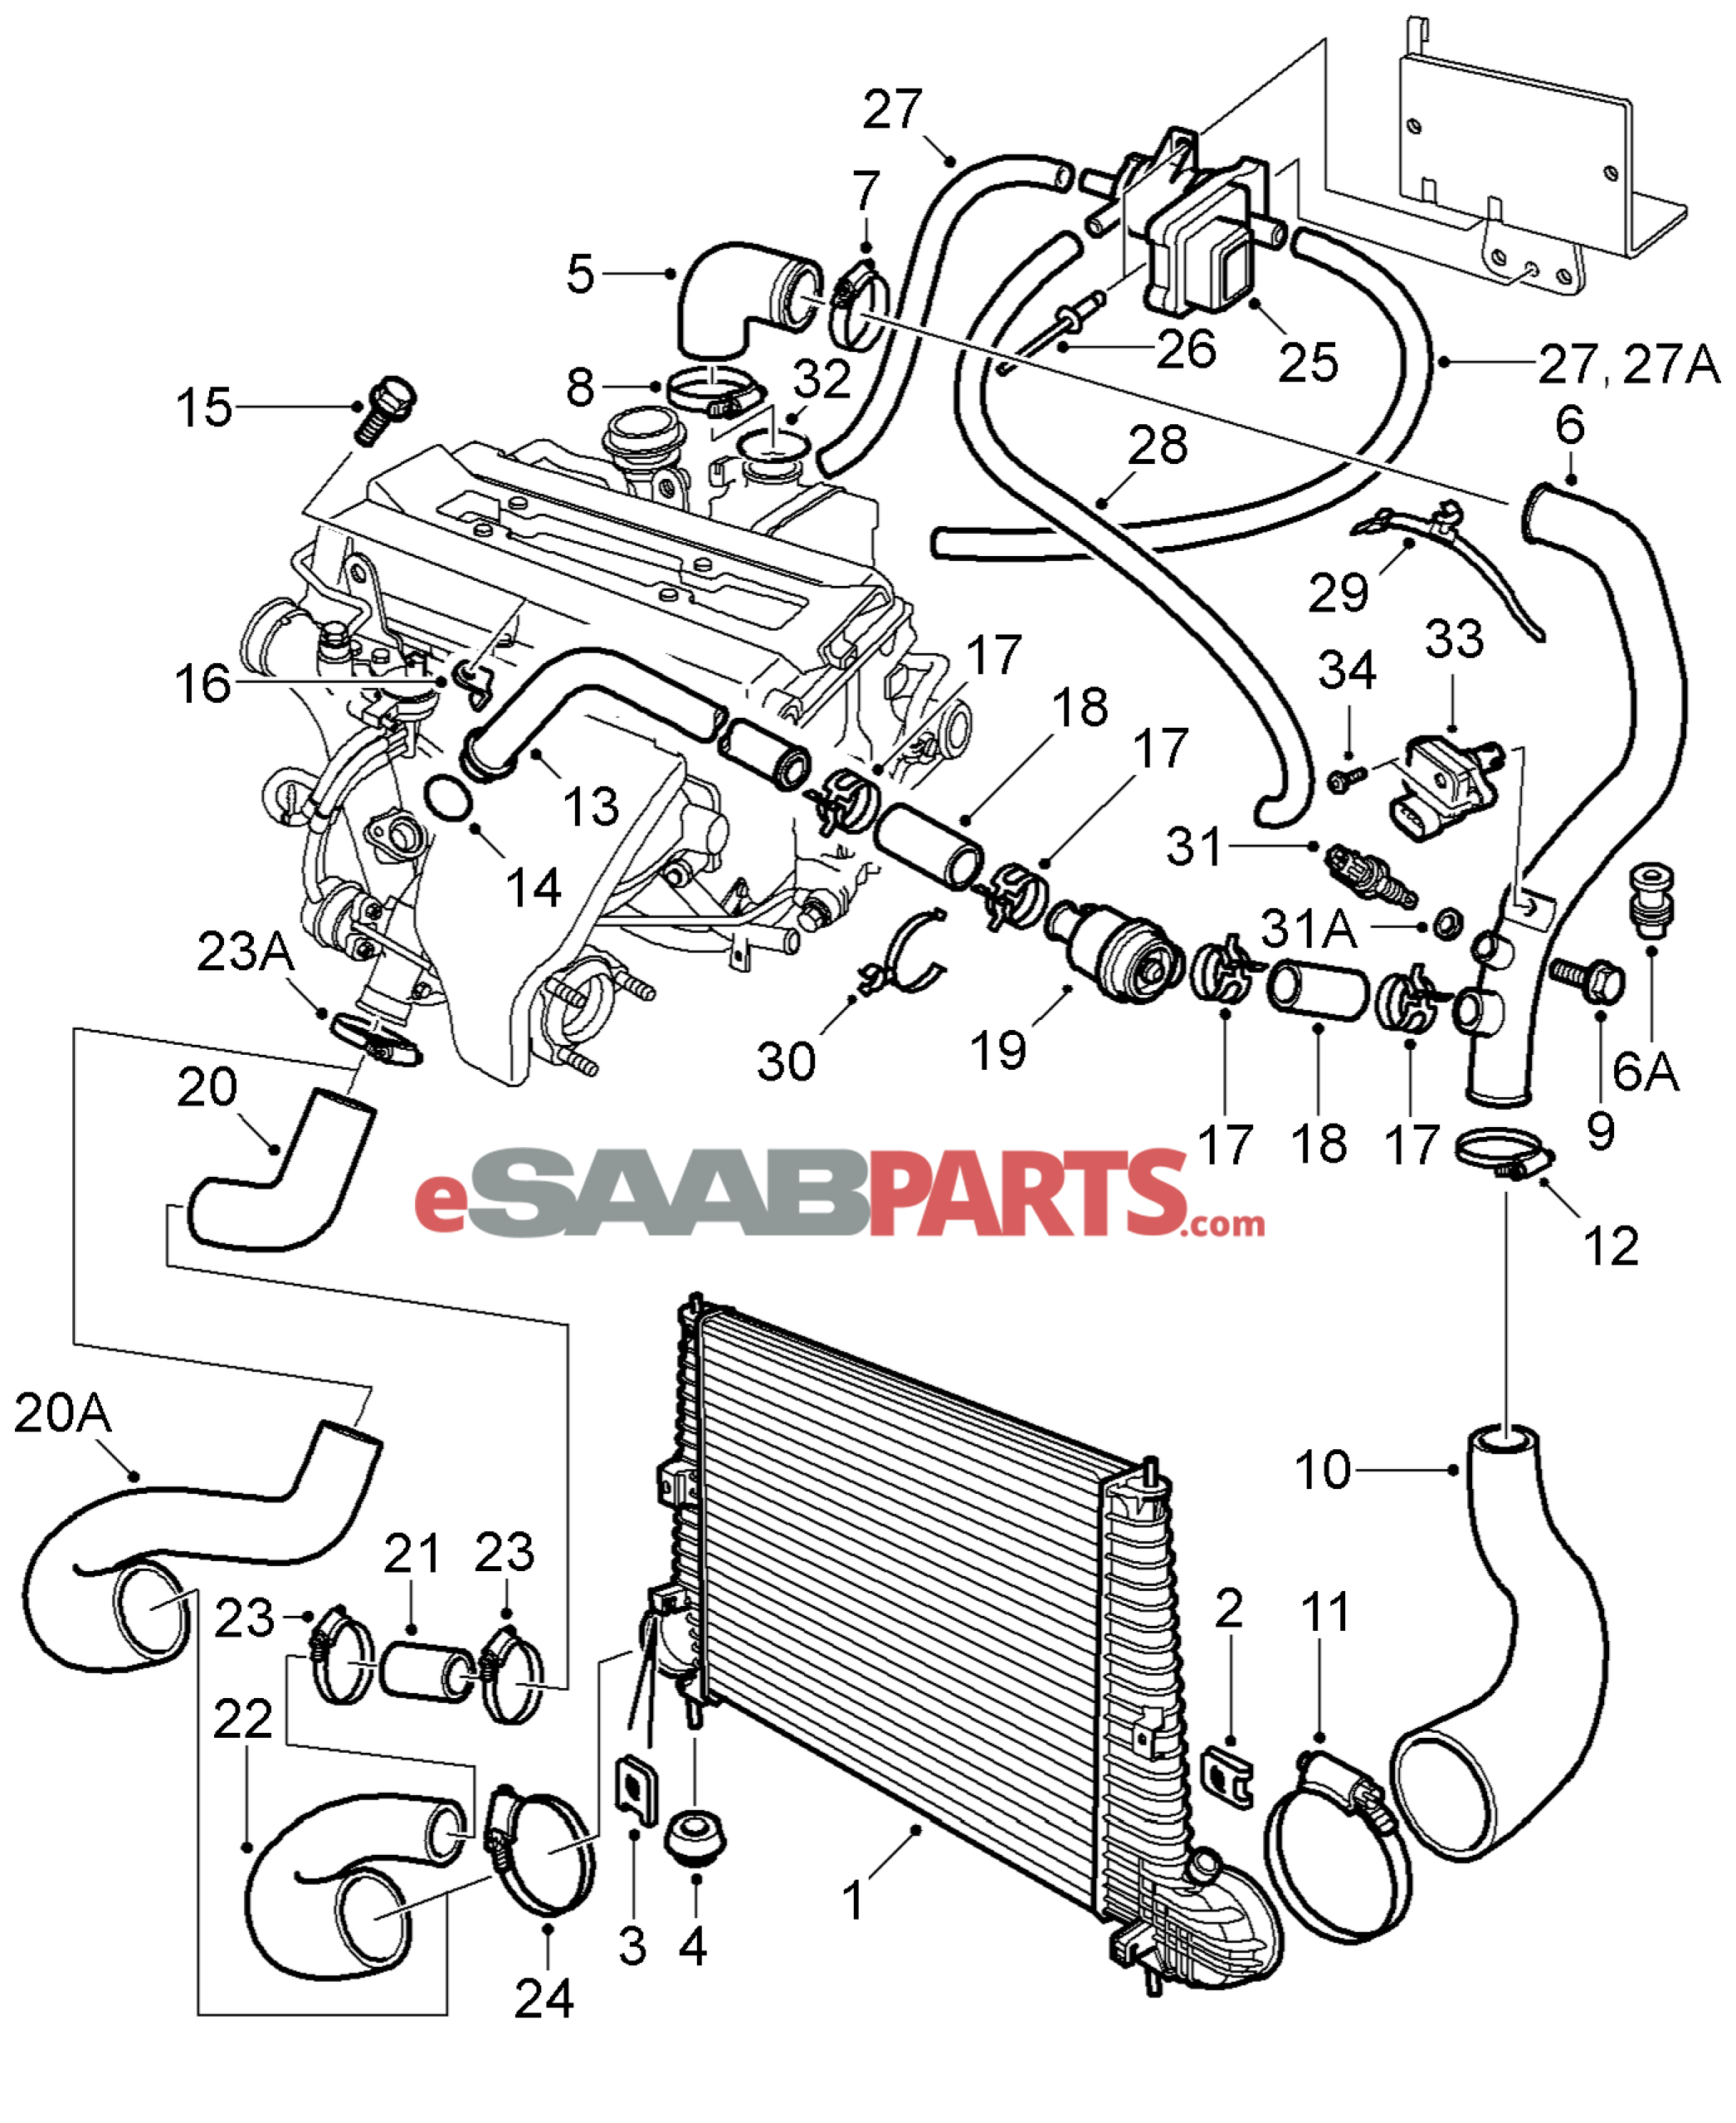 2004 saab engine diagram saab 9 3 linear engine diagram saab 9 3 2 0t engine wiring